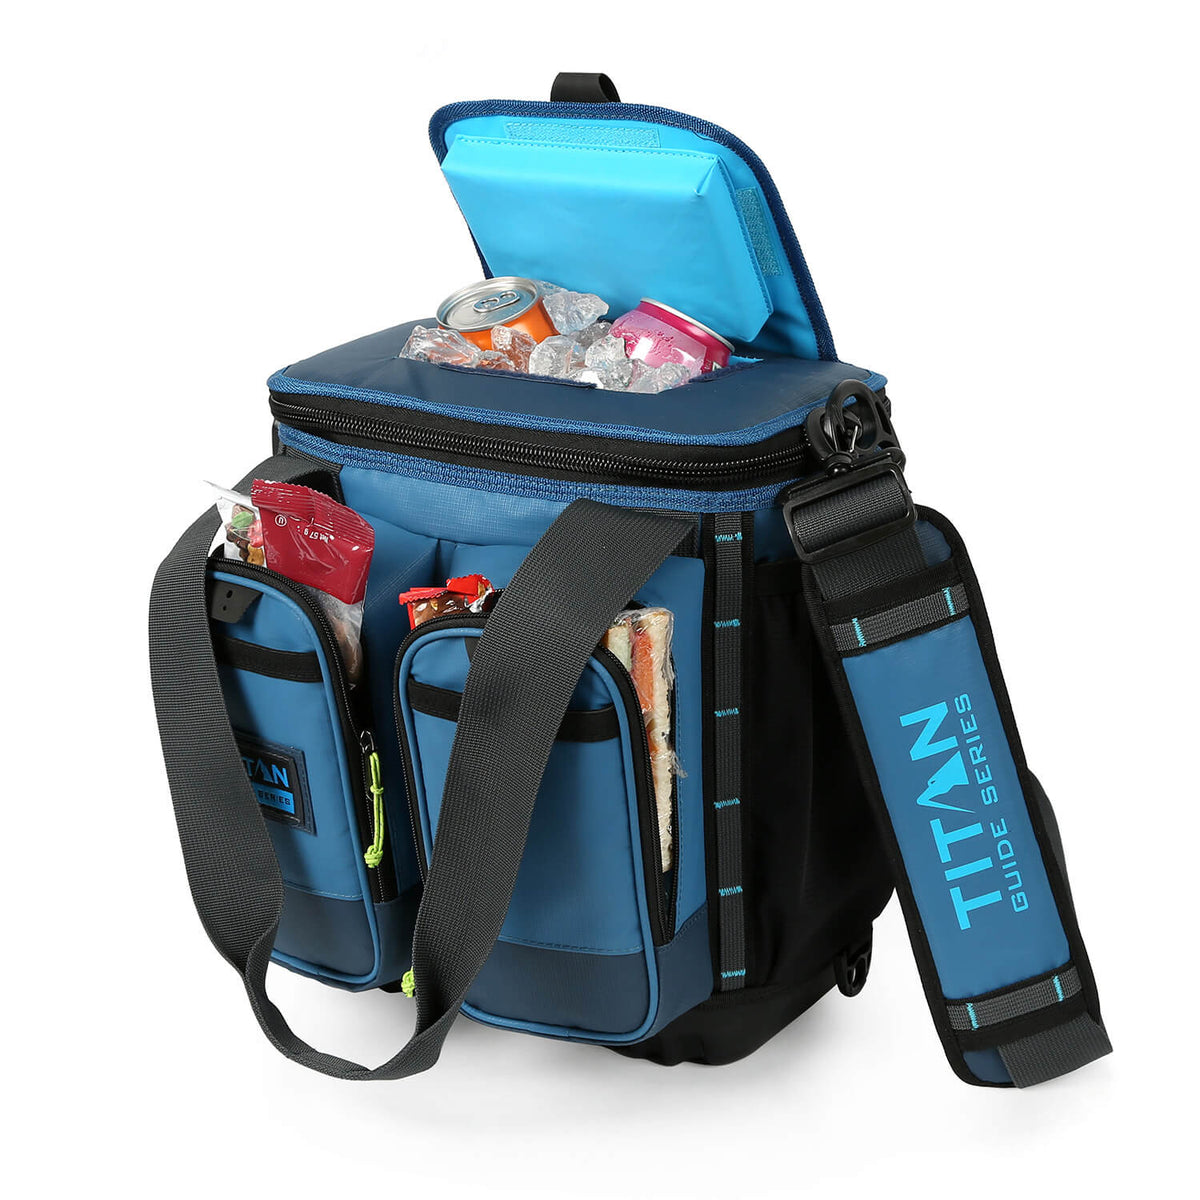 Titan Guide Series™ 16 Can Cooler - Open, propped easy access lid and pockets